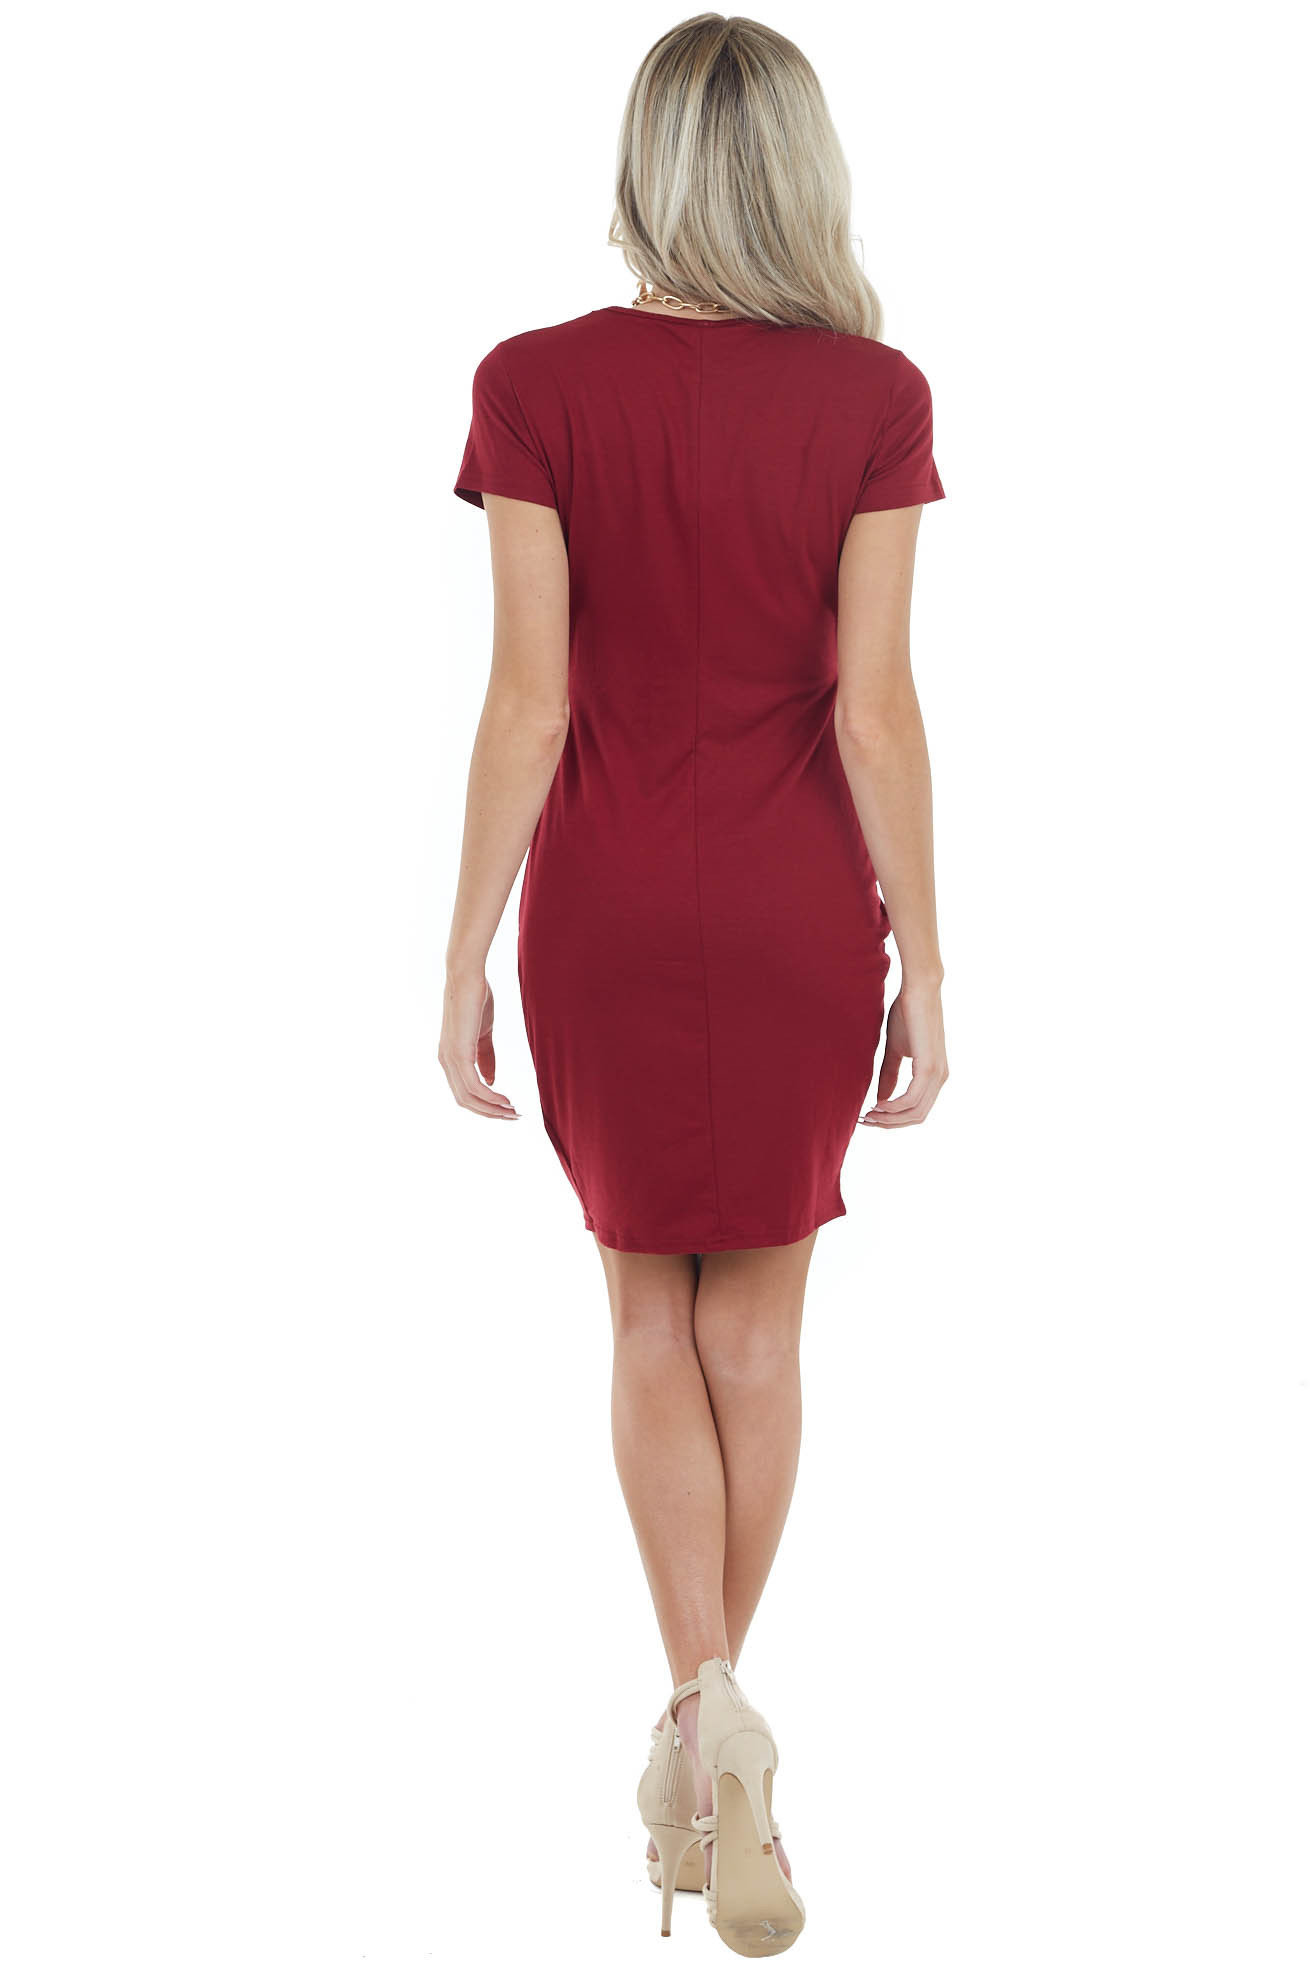 Wine Short Sleeve Bodycon Side Ruched Dress with Side Slit